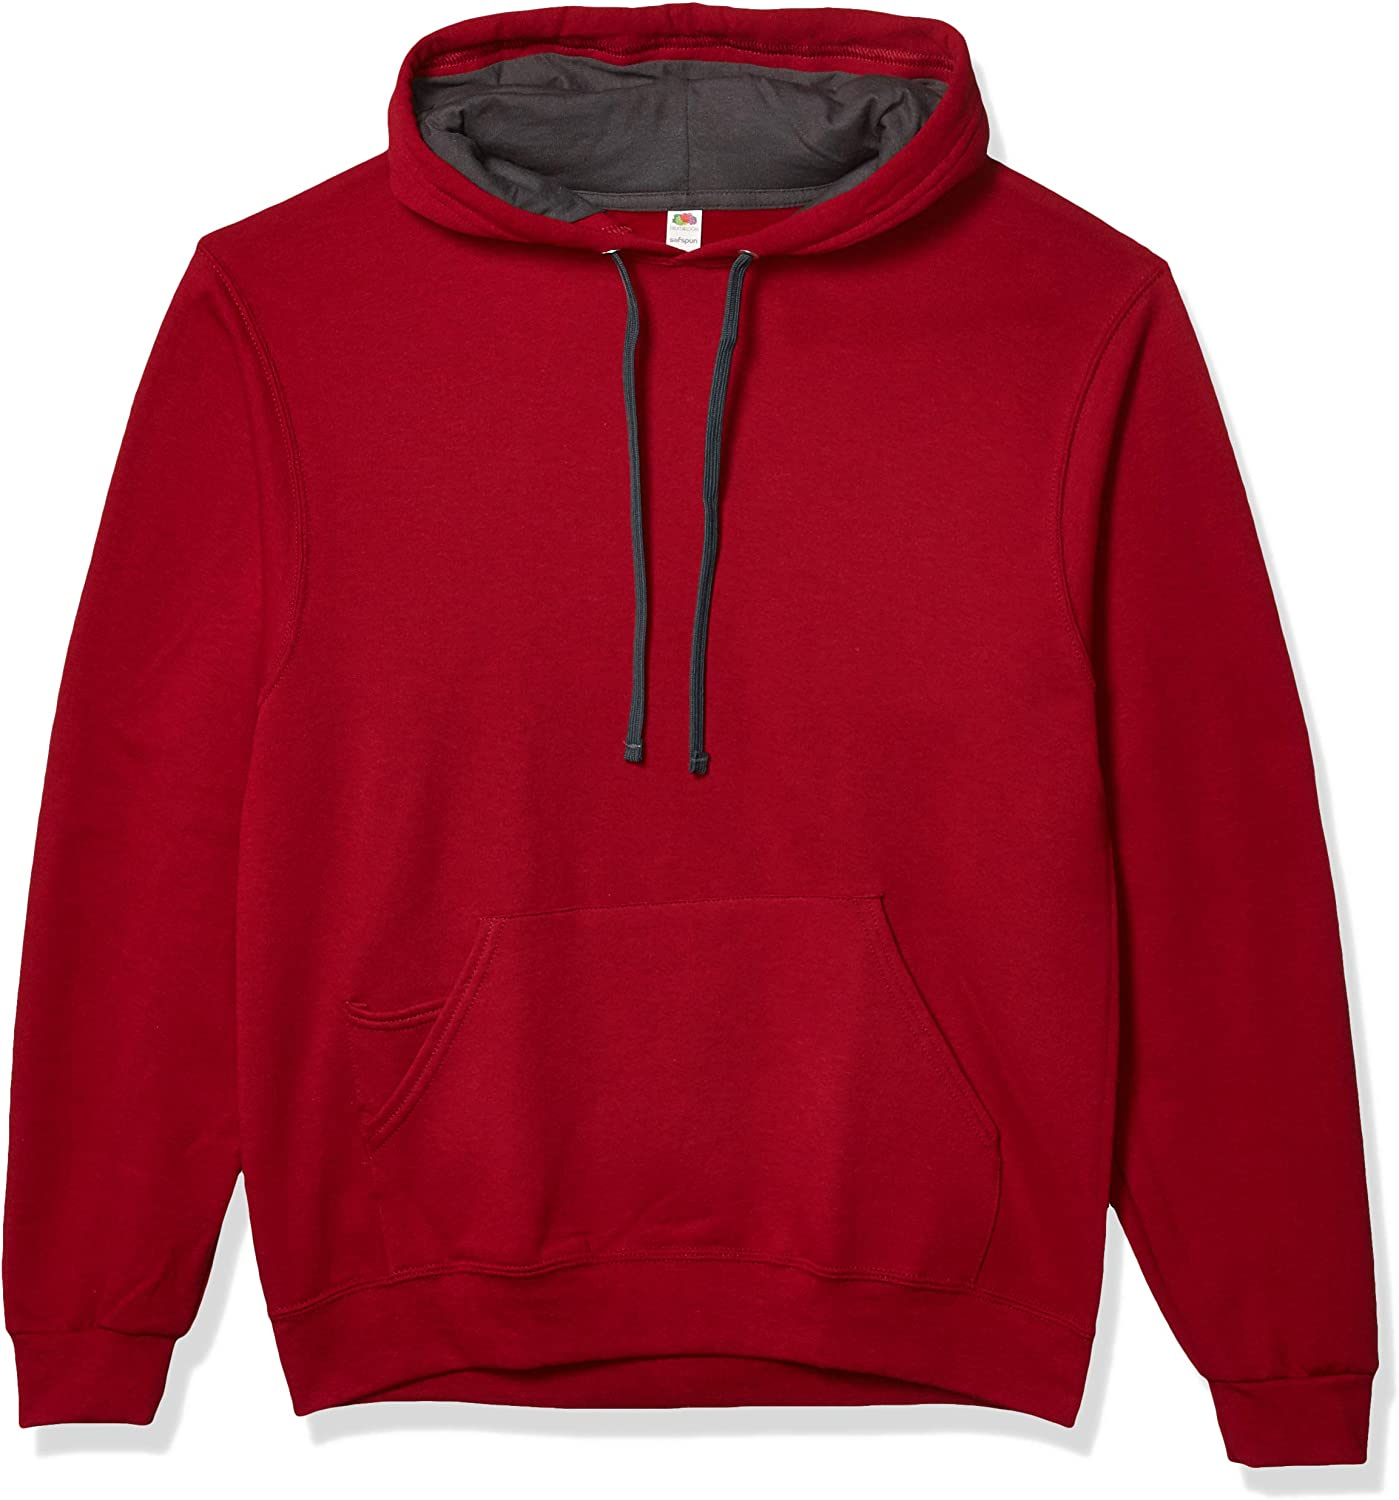 Fruit of the Loom Men's Hooded Sweatshirt-ANZ